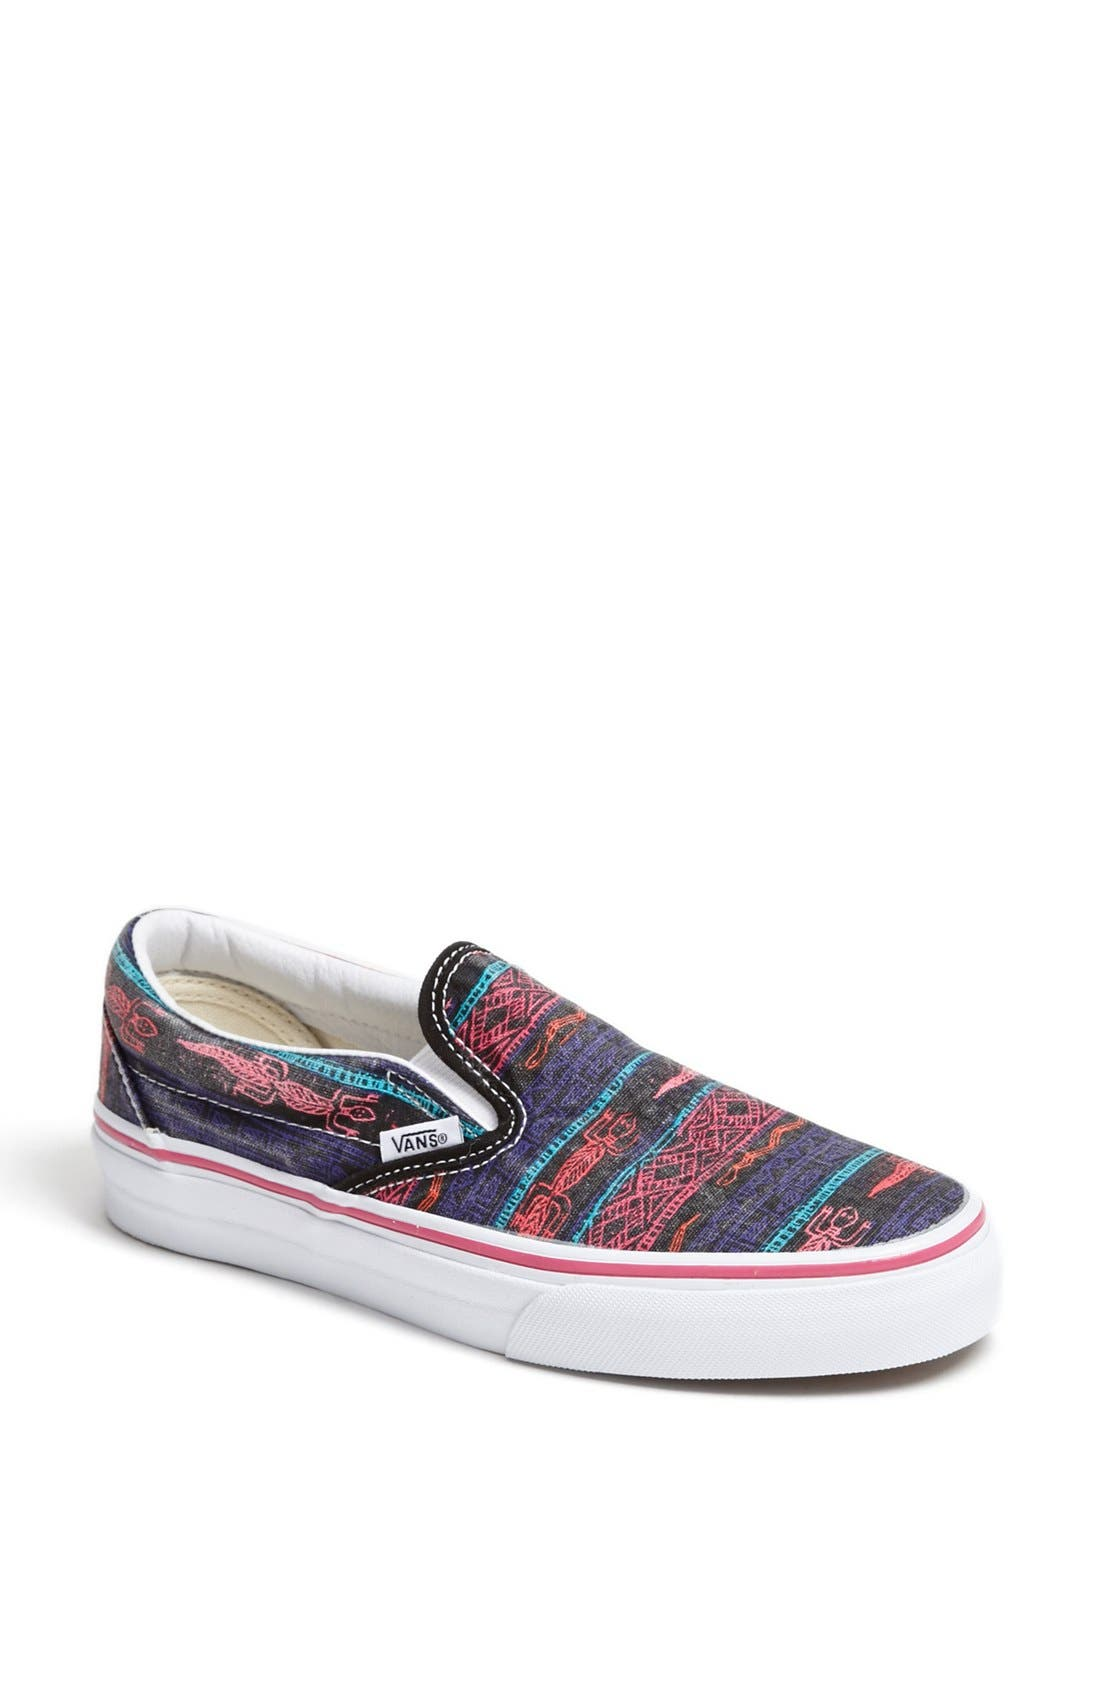 Alternate Image 1 Selected - Vans 'Van Doren' Slip-On Sneaker (Women)